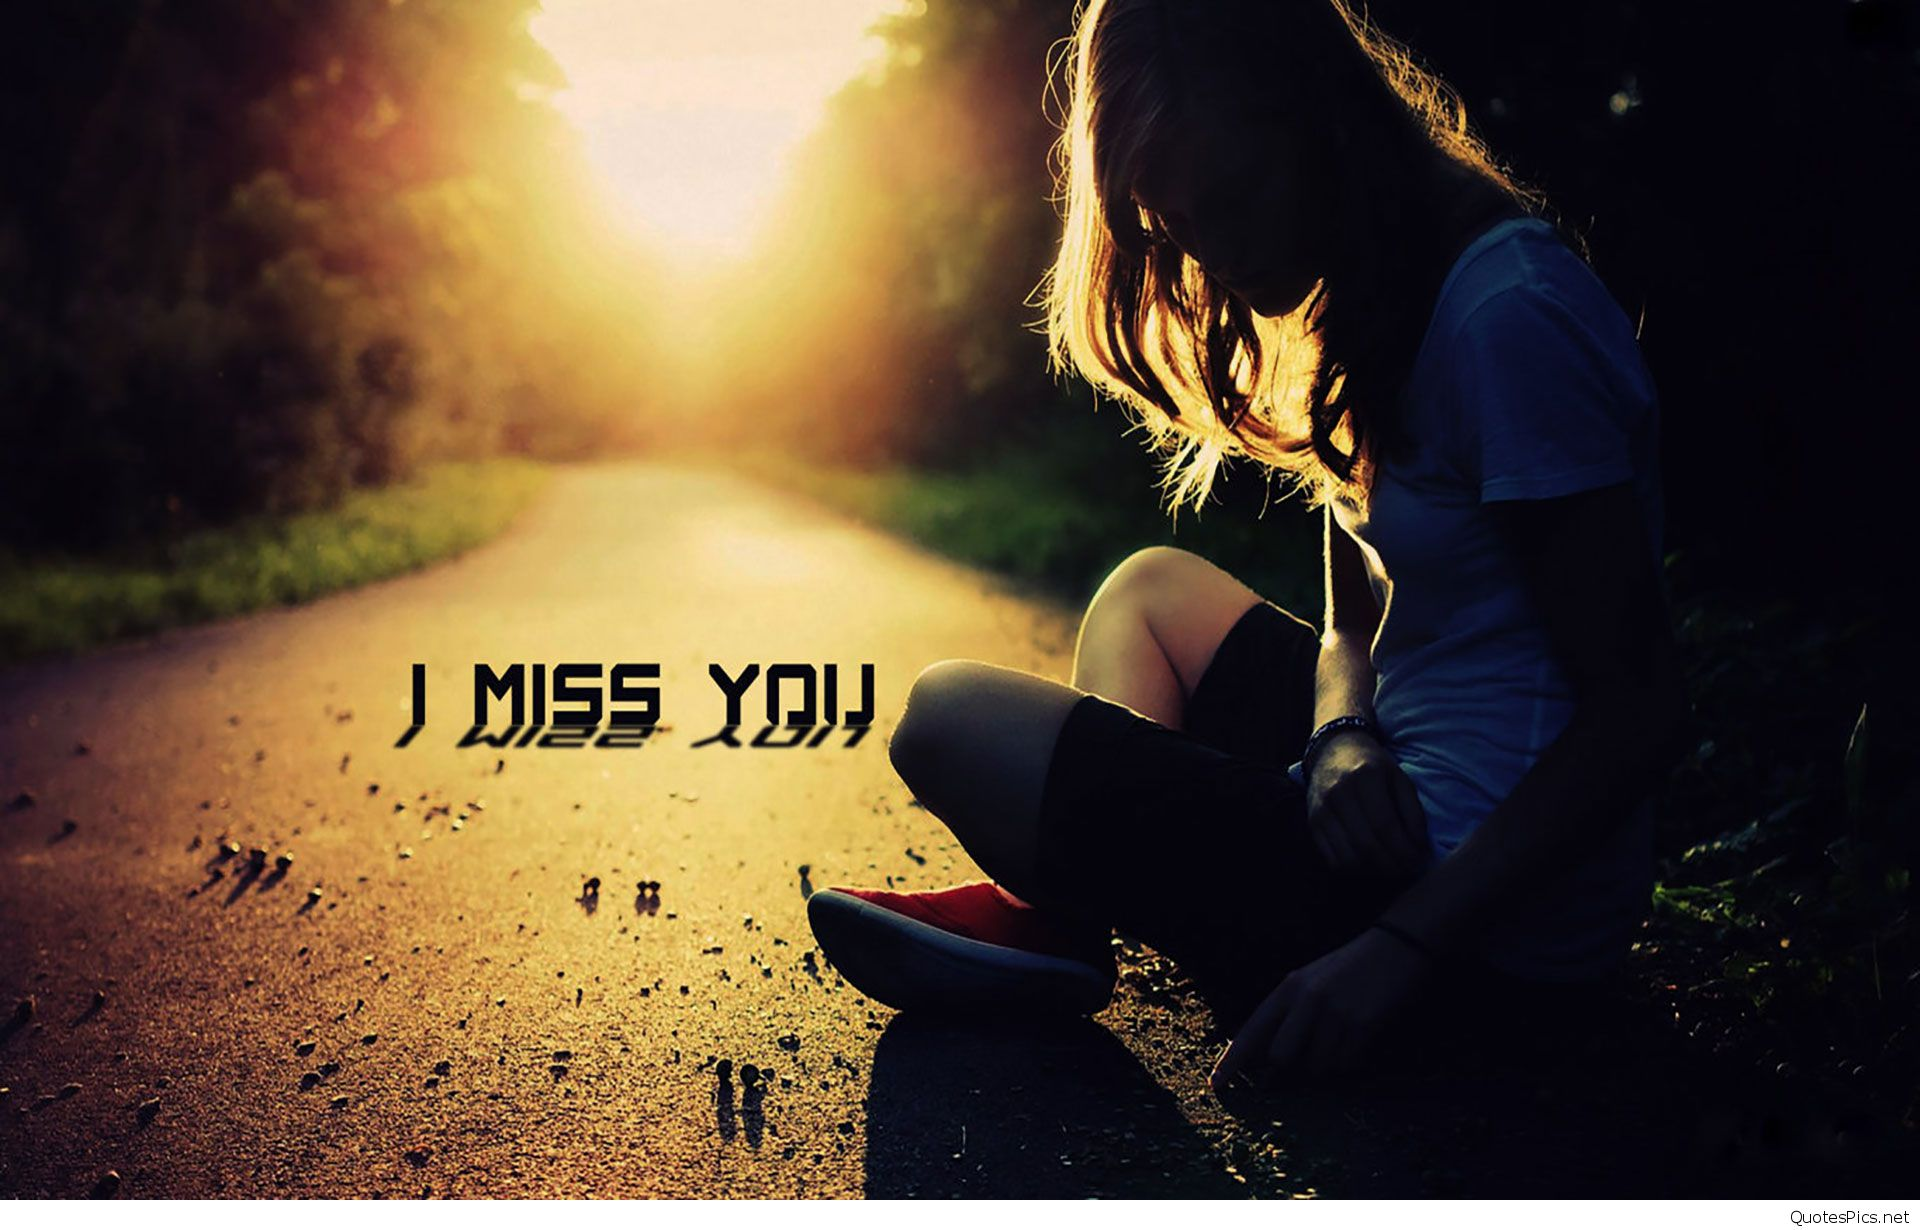 I miss you wallpapers pictures 2017 2018 1920x1230